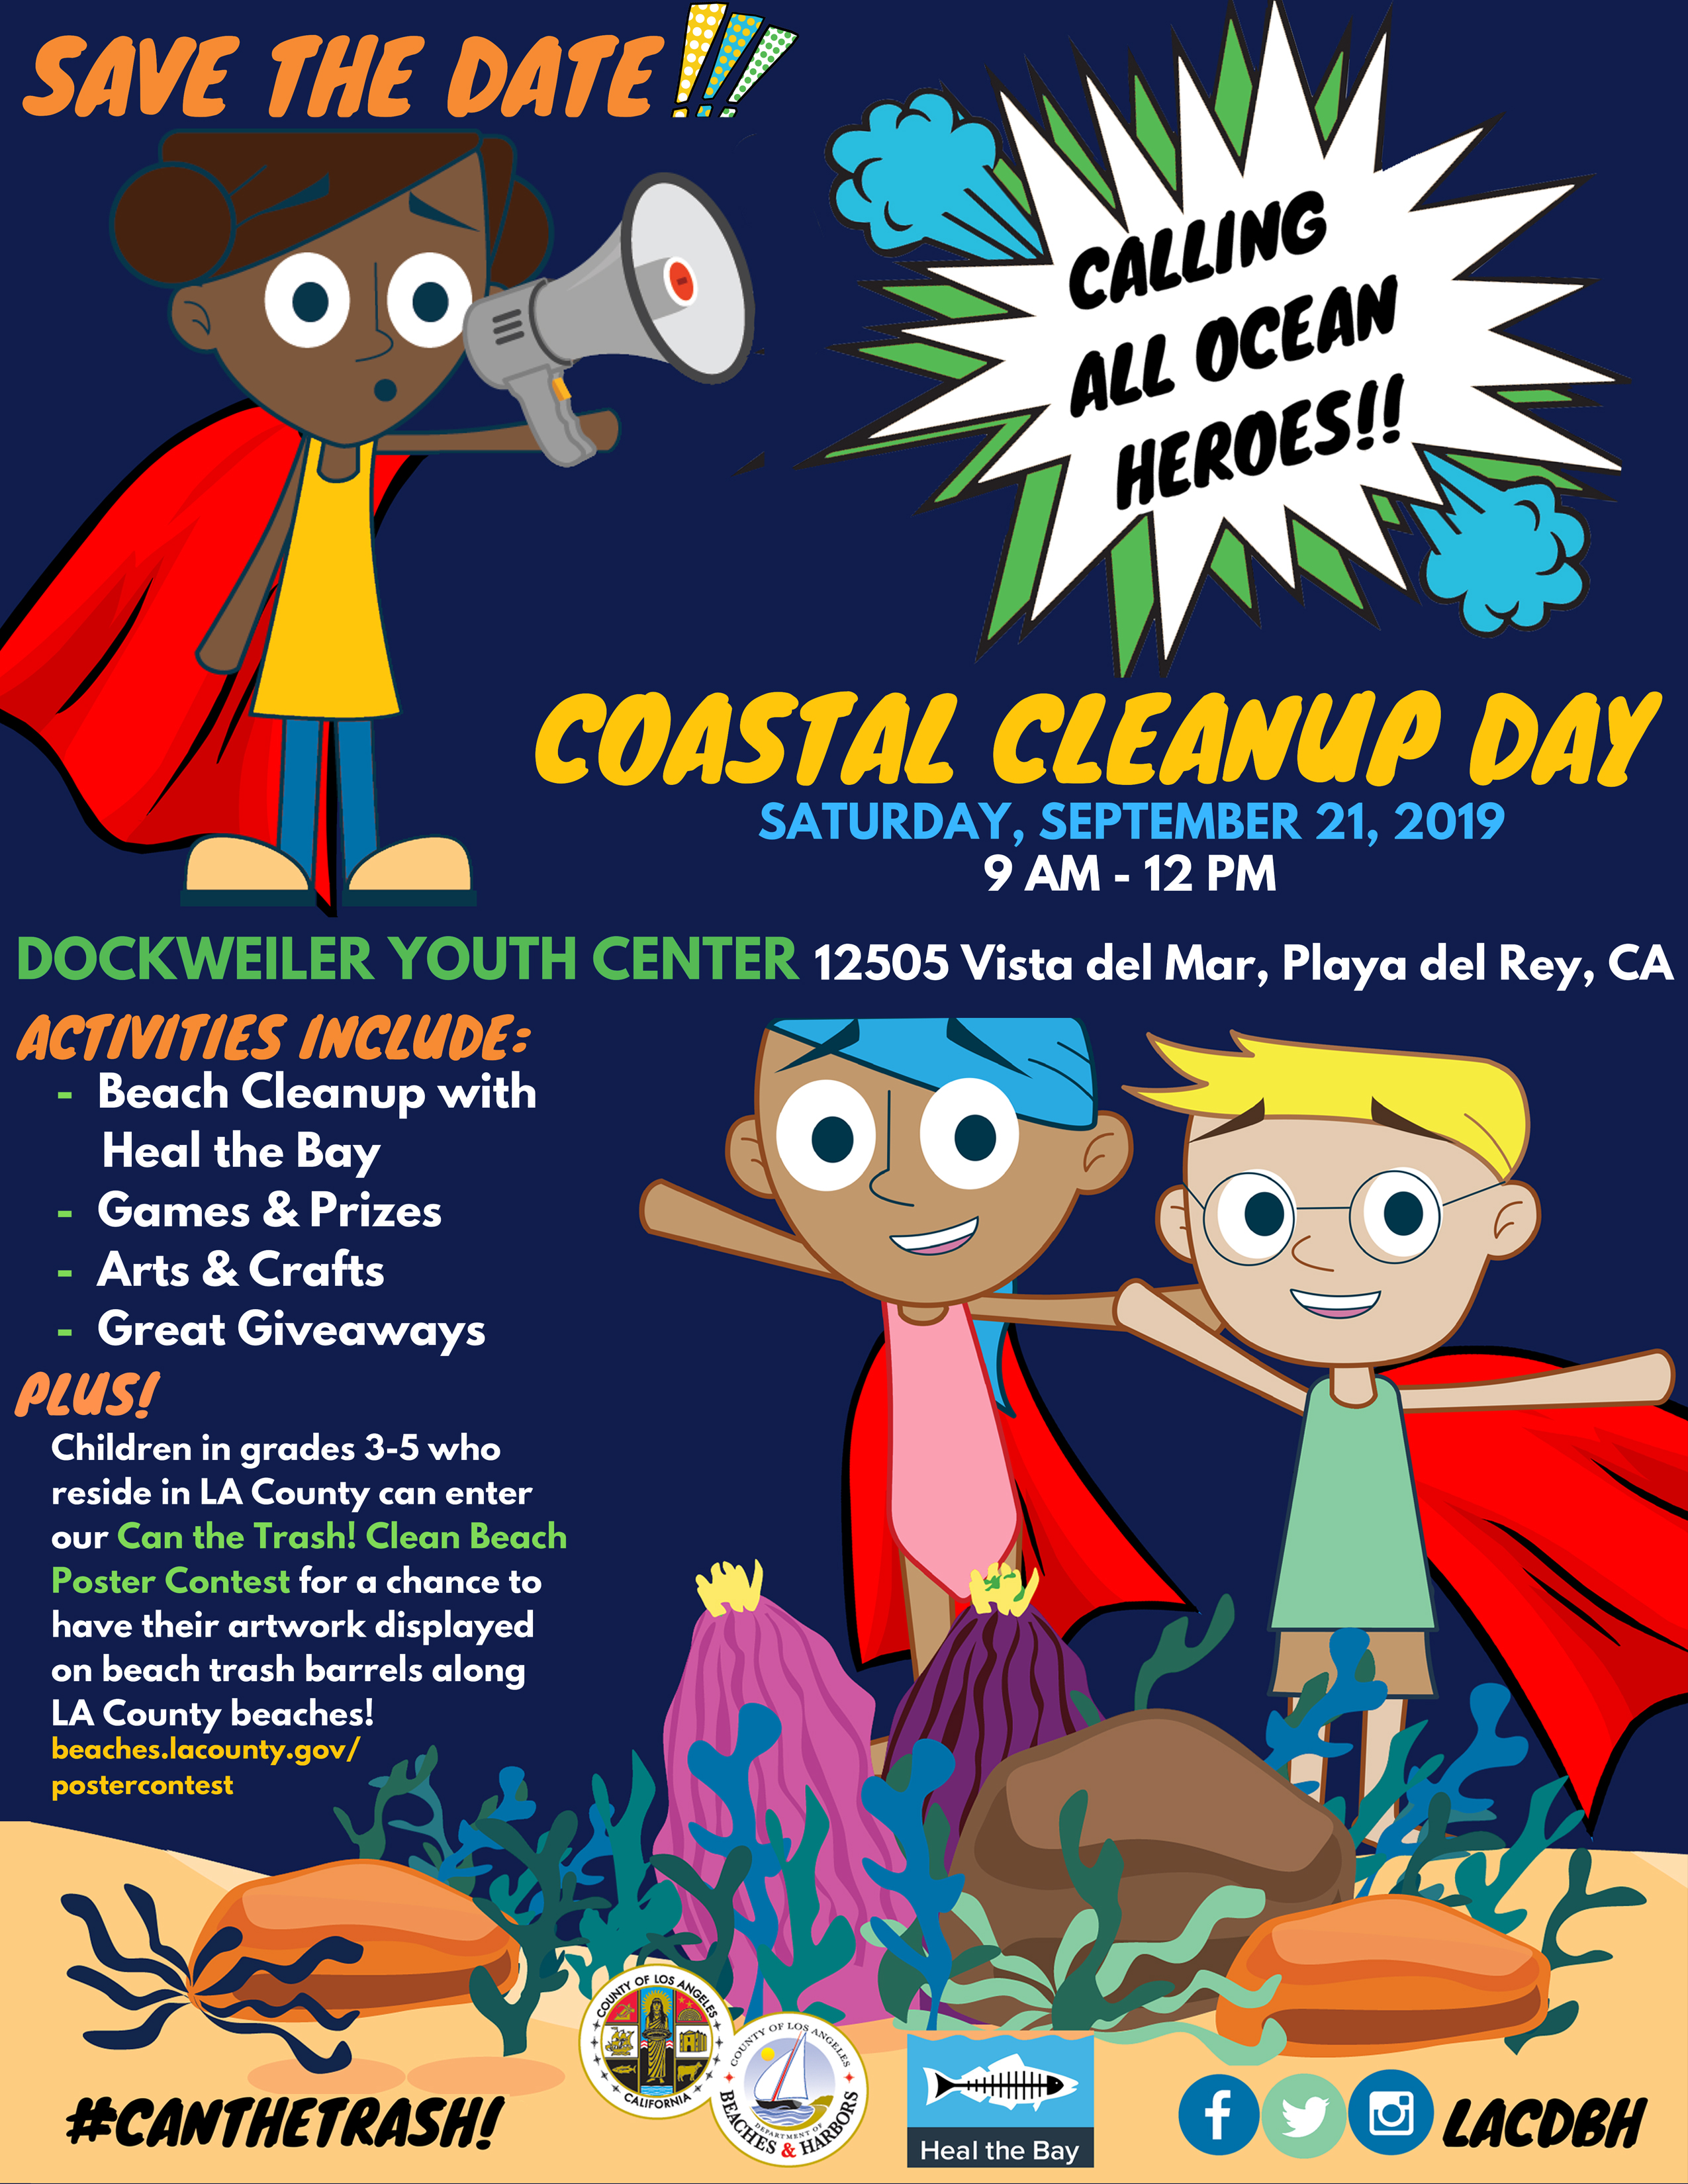 Coastal Cleanup Day flyer